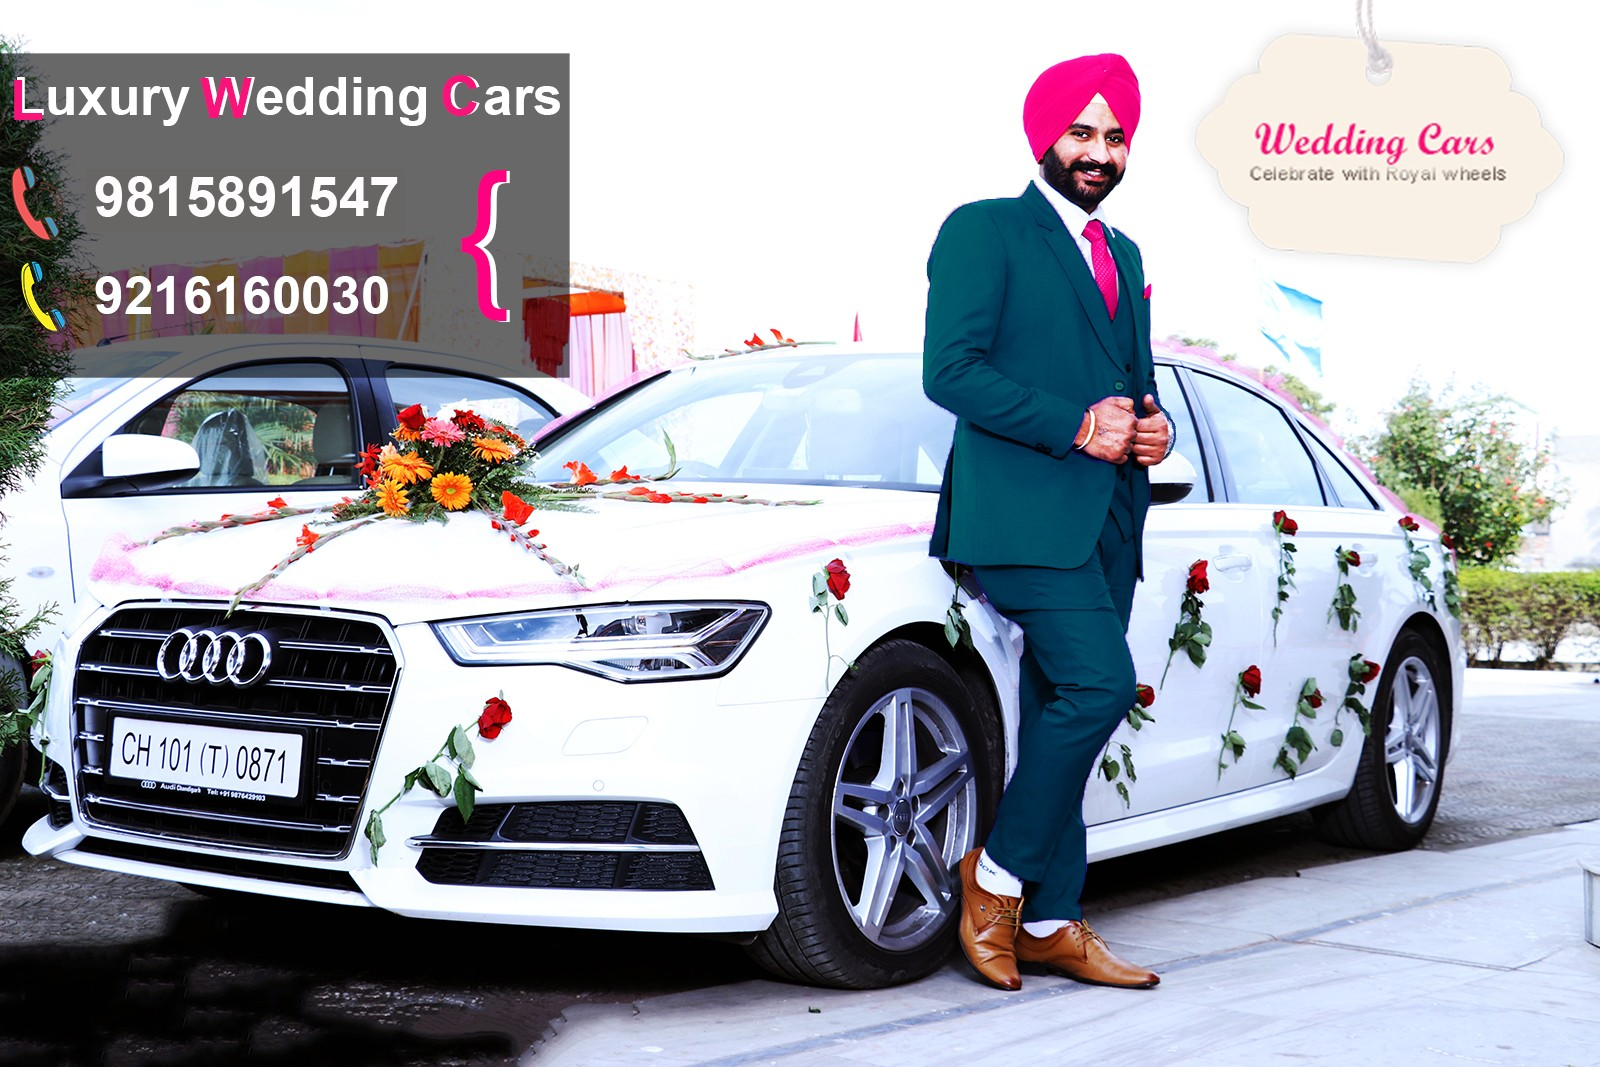 luxury wedding cabs in Chandigarh rent wedding car Chandigarh luxury wedding cars, Chandigarh luxury wedding car, wedding car hire, Hire wedding cars in Chandigarh